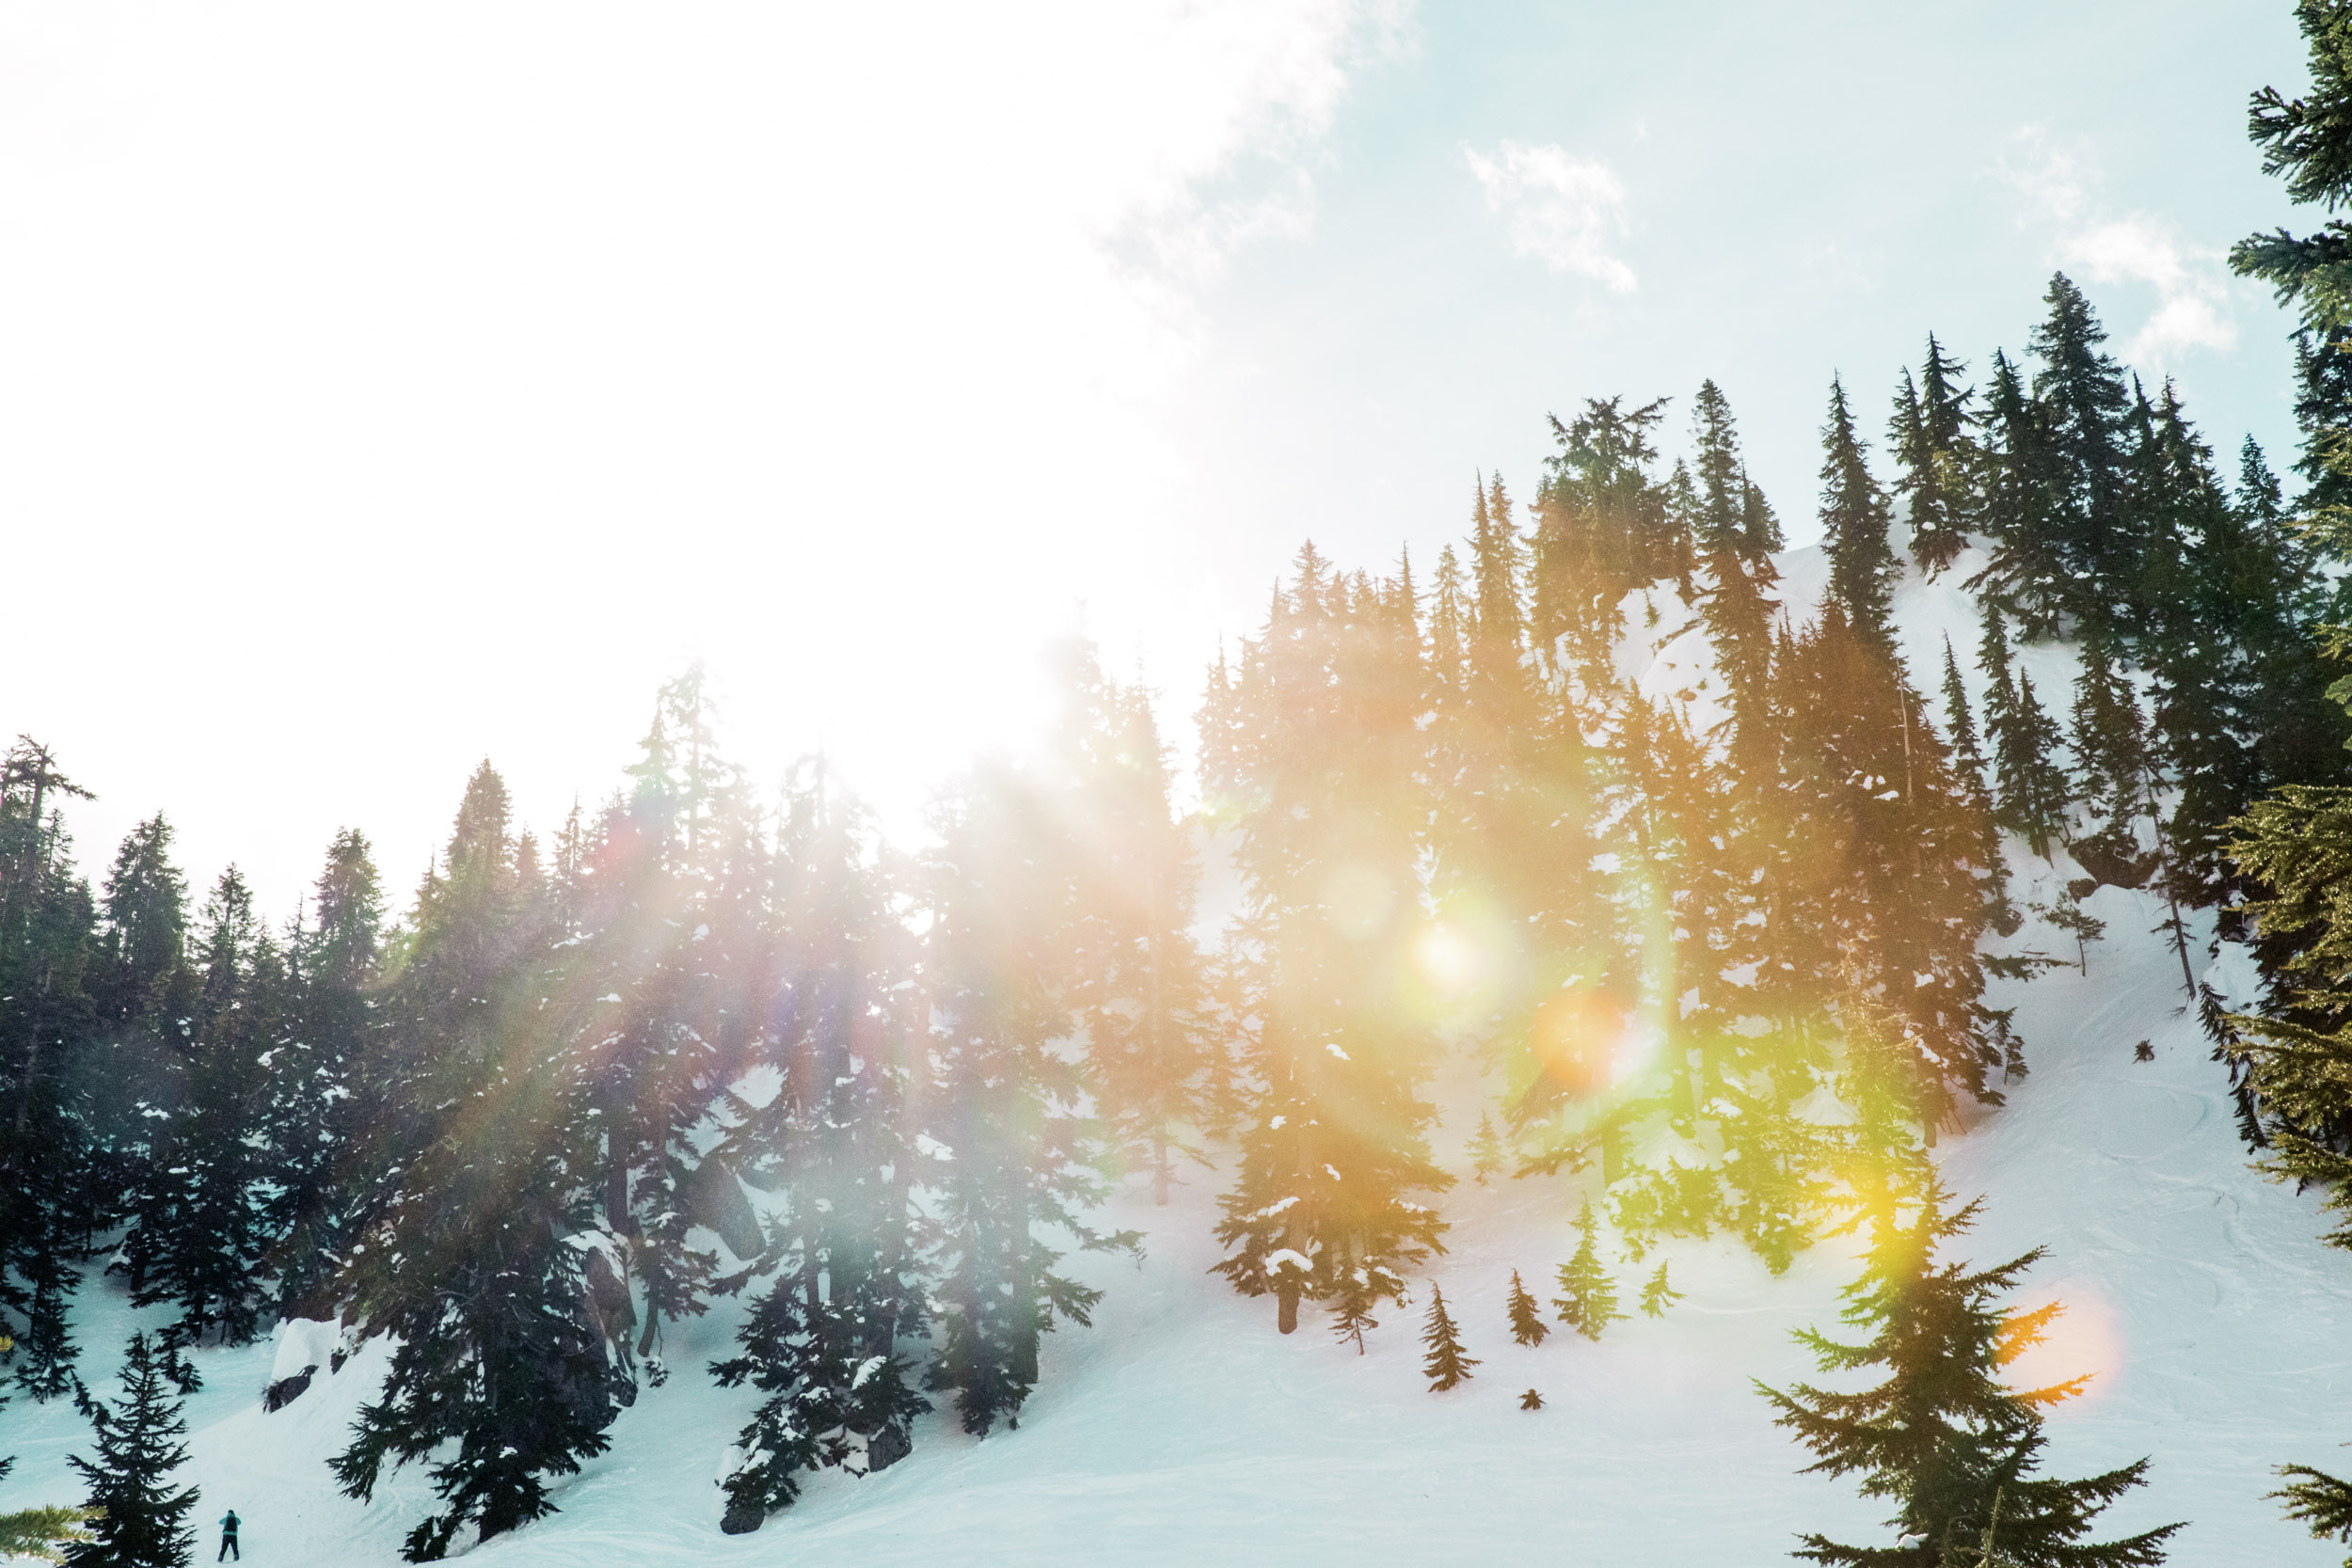 Snowy Mountain with Pine Trees and Sunshine REI